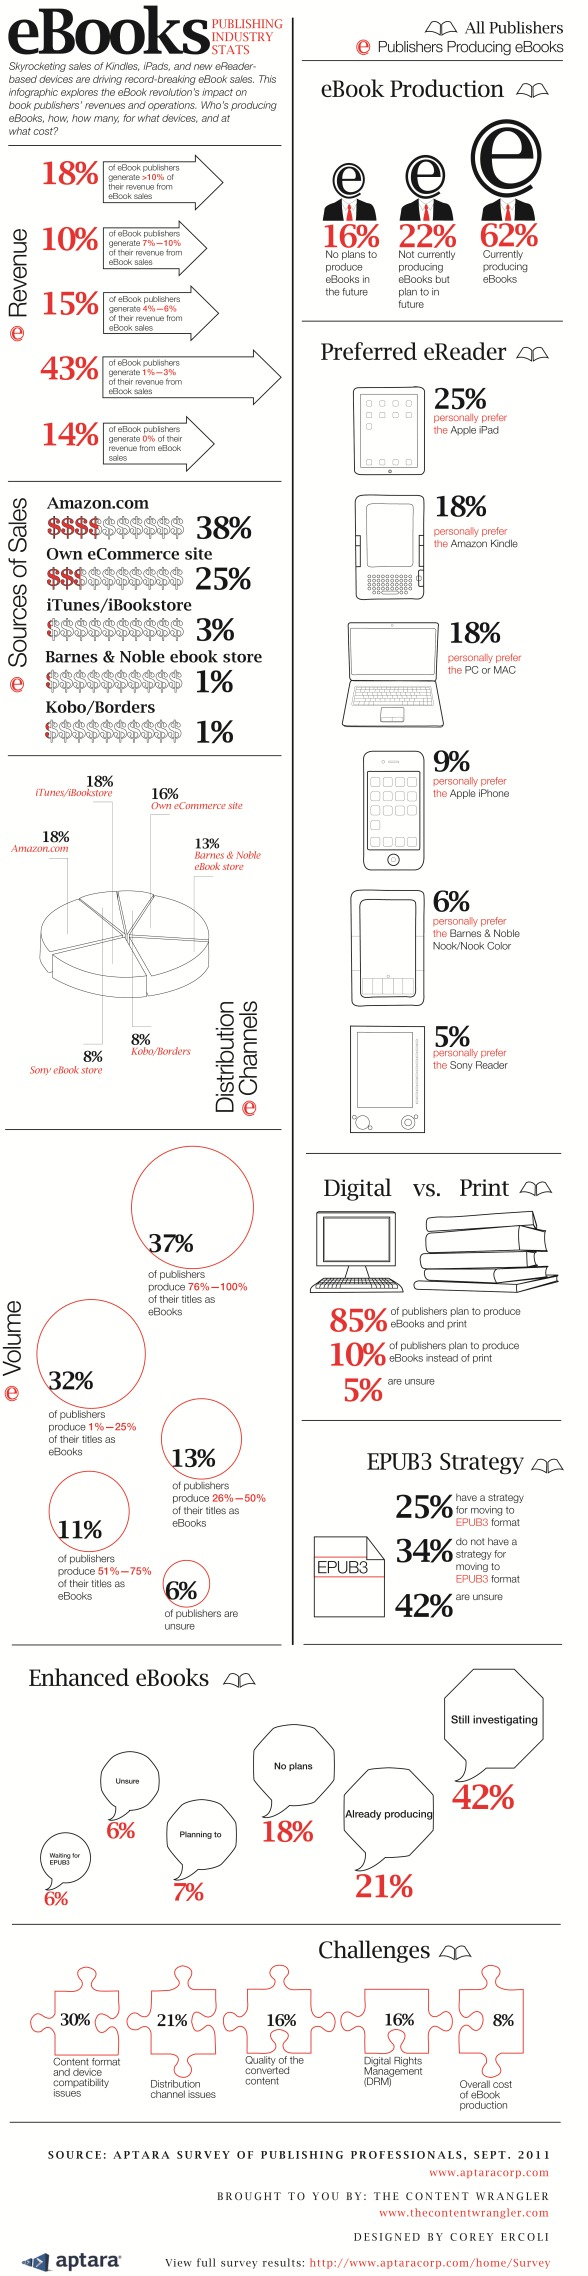 ebookinfographic2011_for_distribution